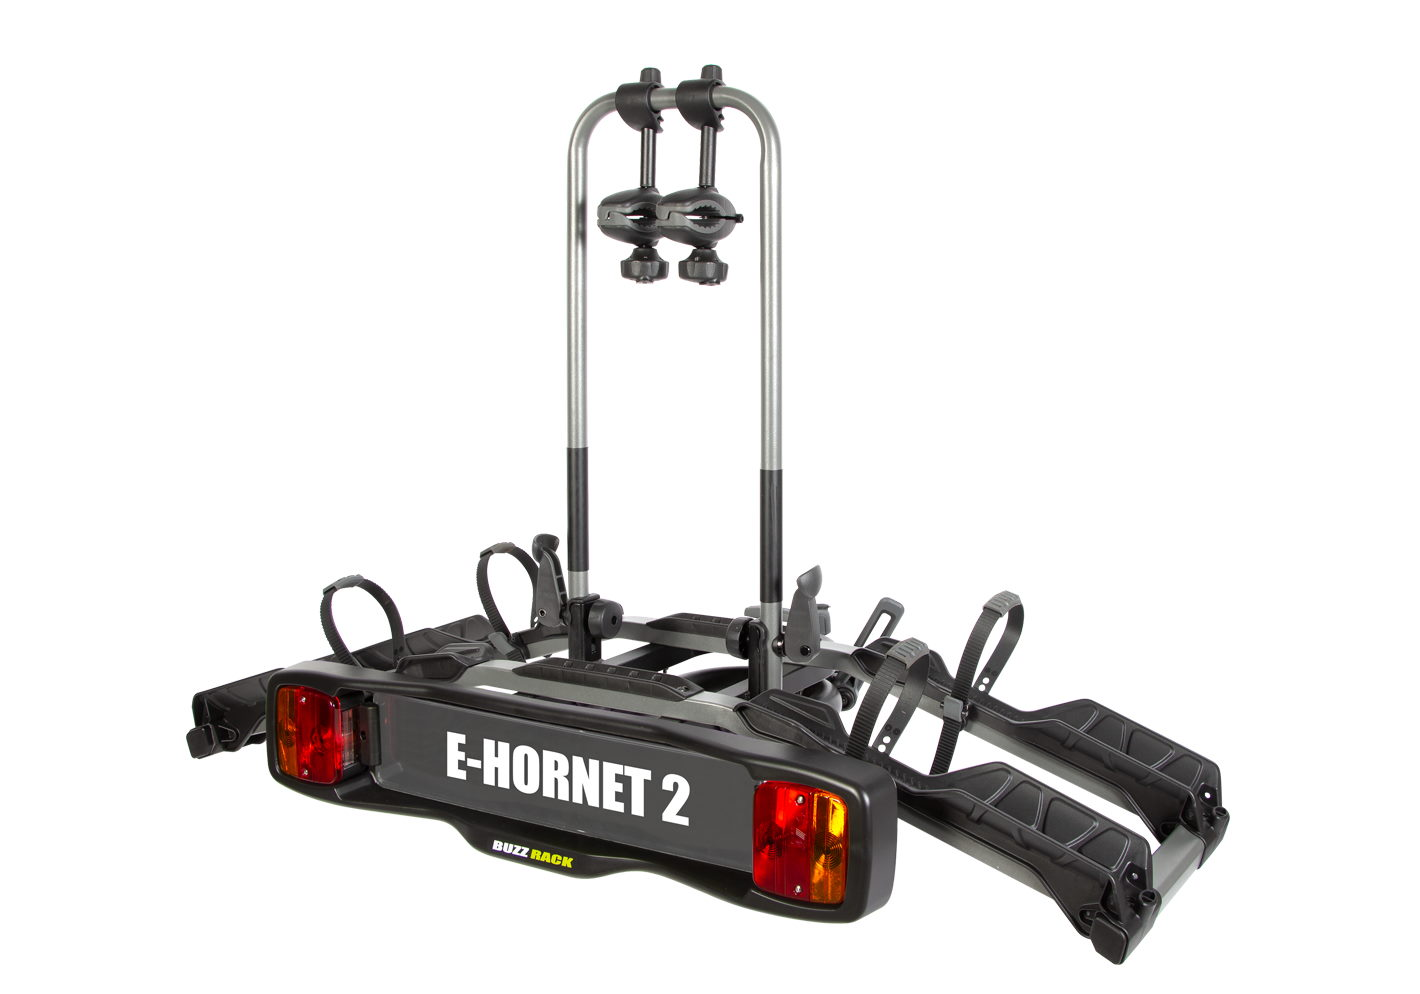 :BUZZ RACK E-Hornet 2 bike tilting e-bike carrier no. BRP402